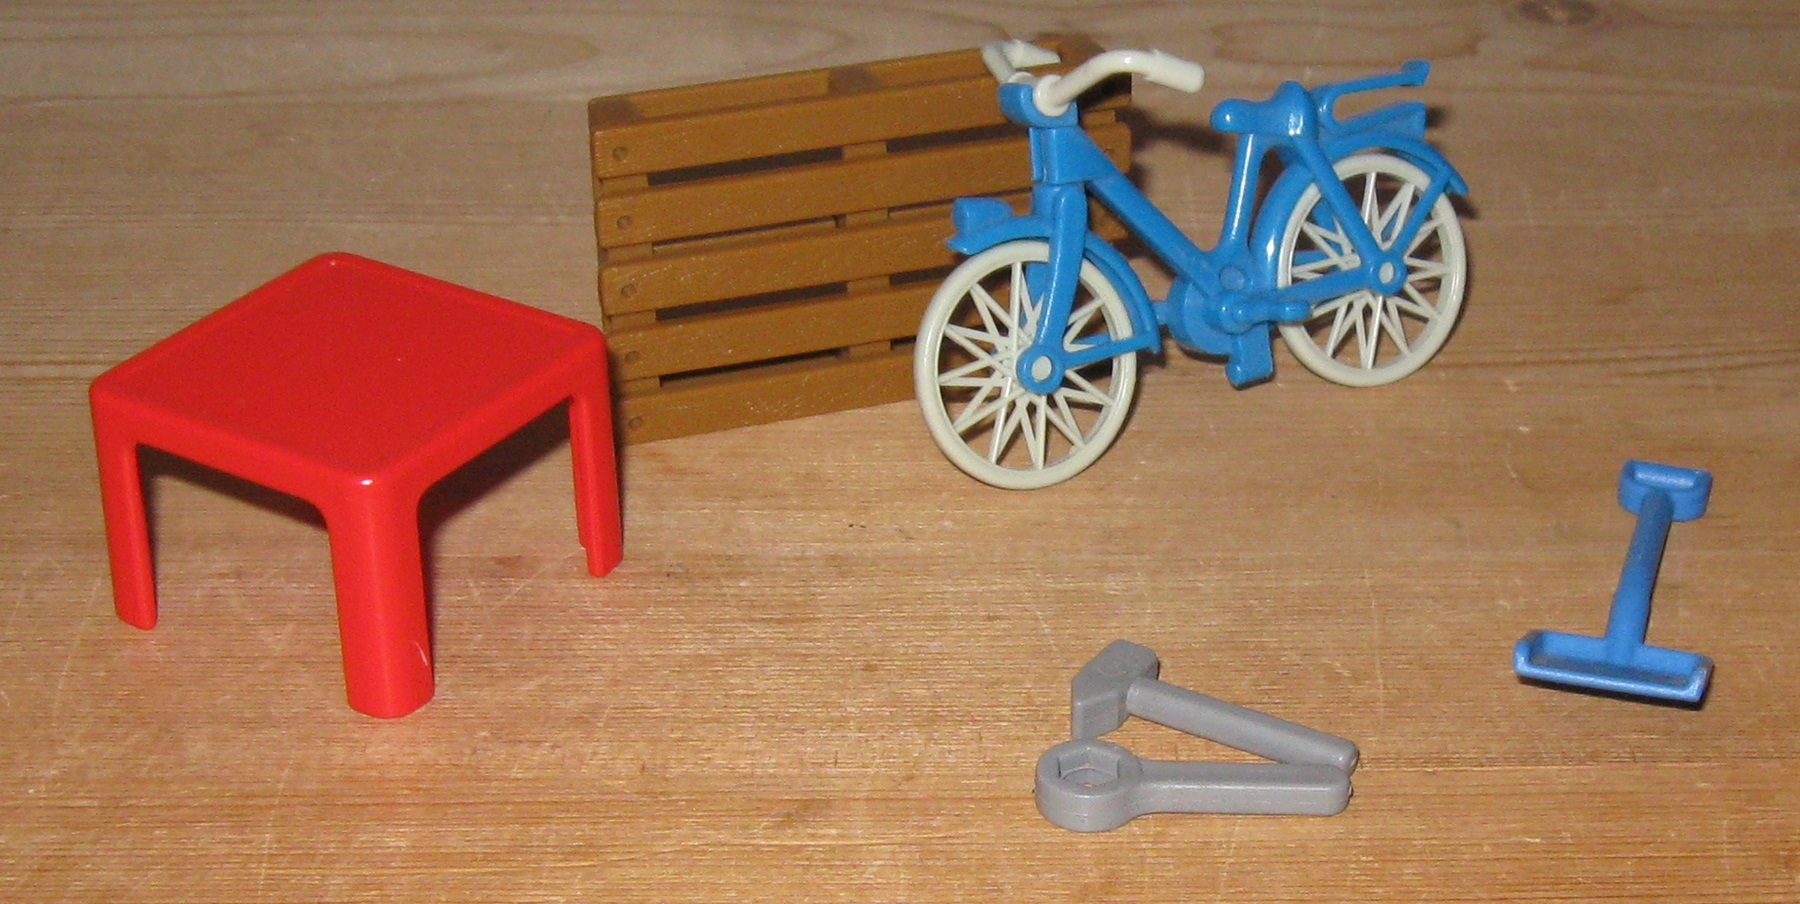 0999 Playmobil reservedele